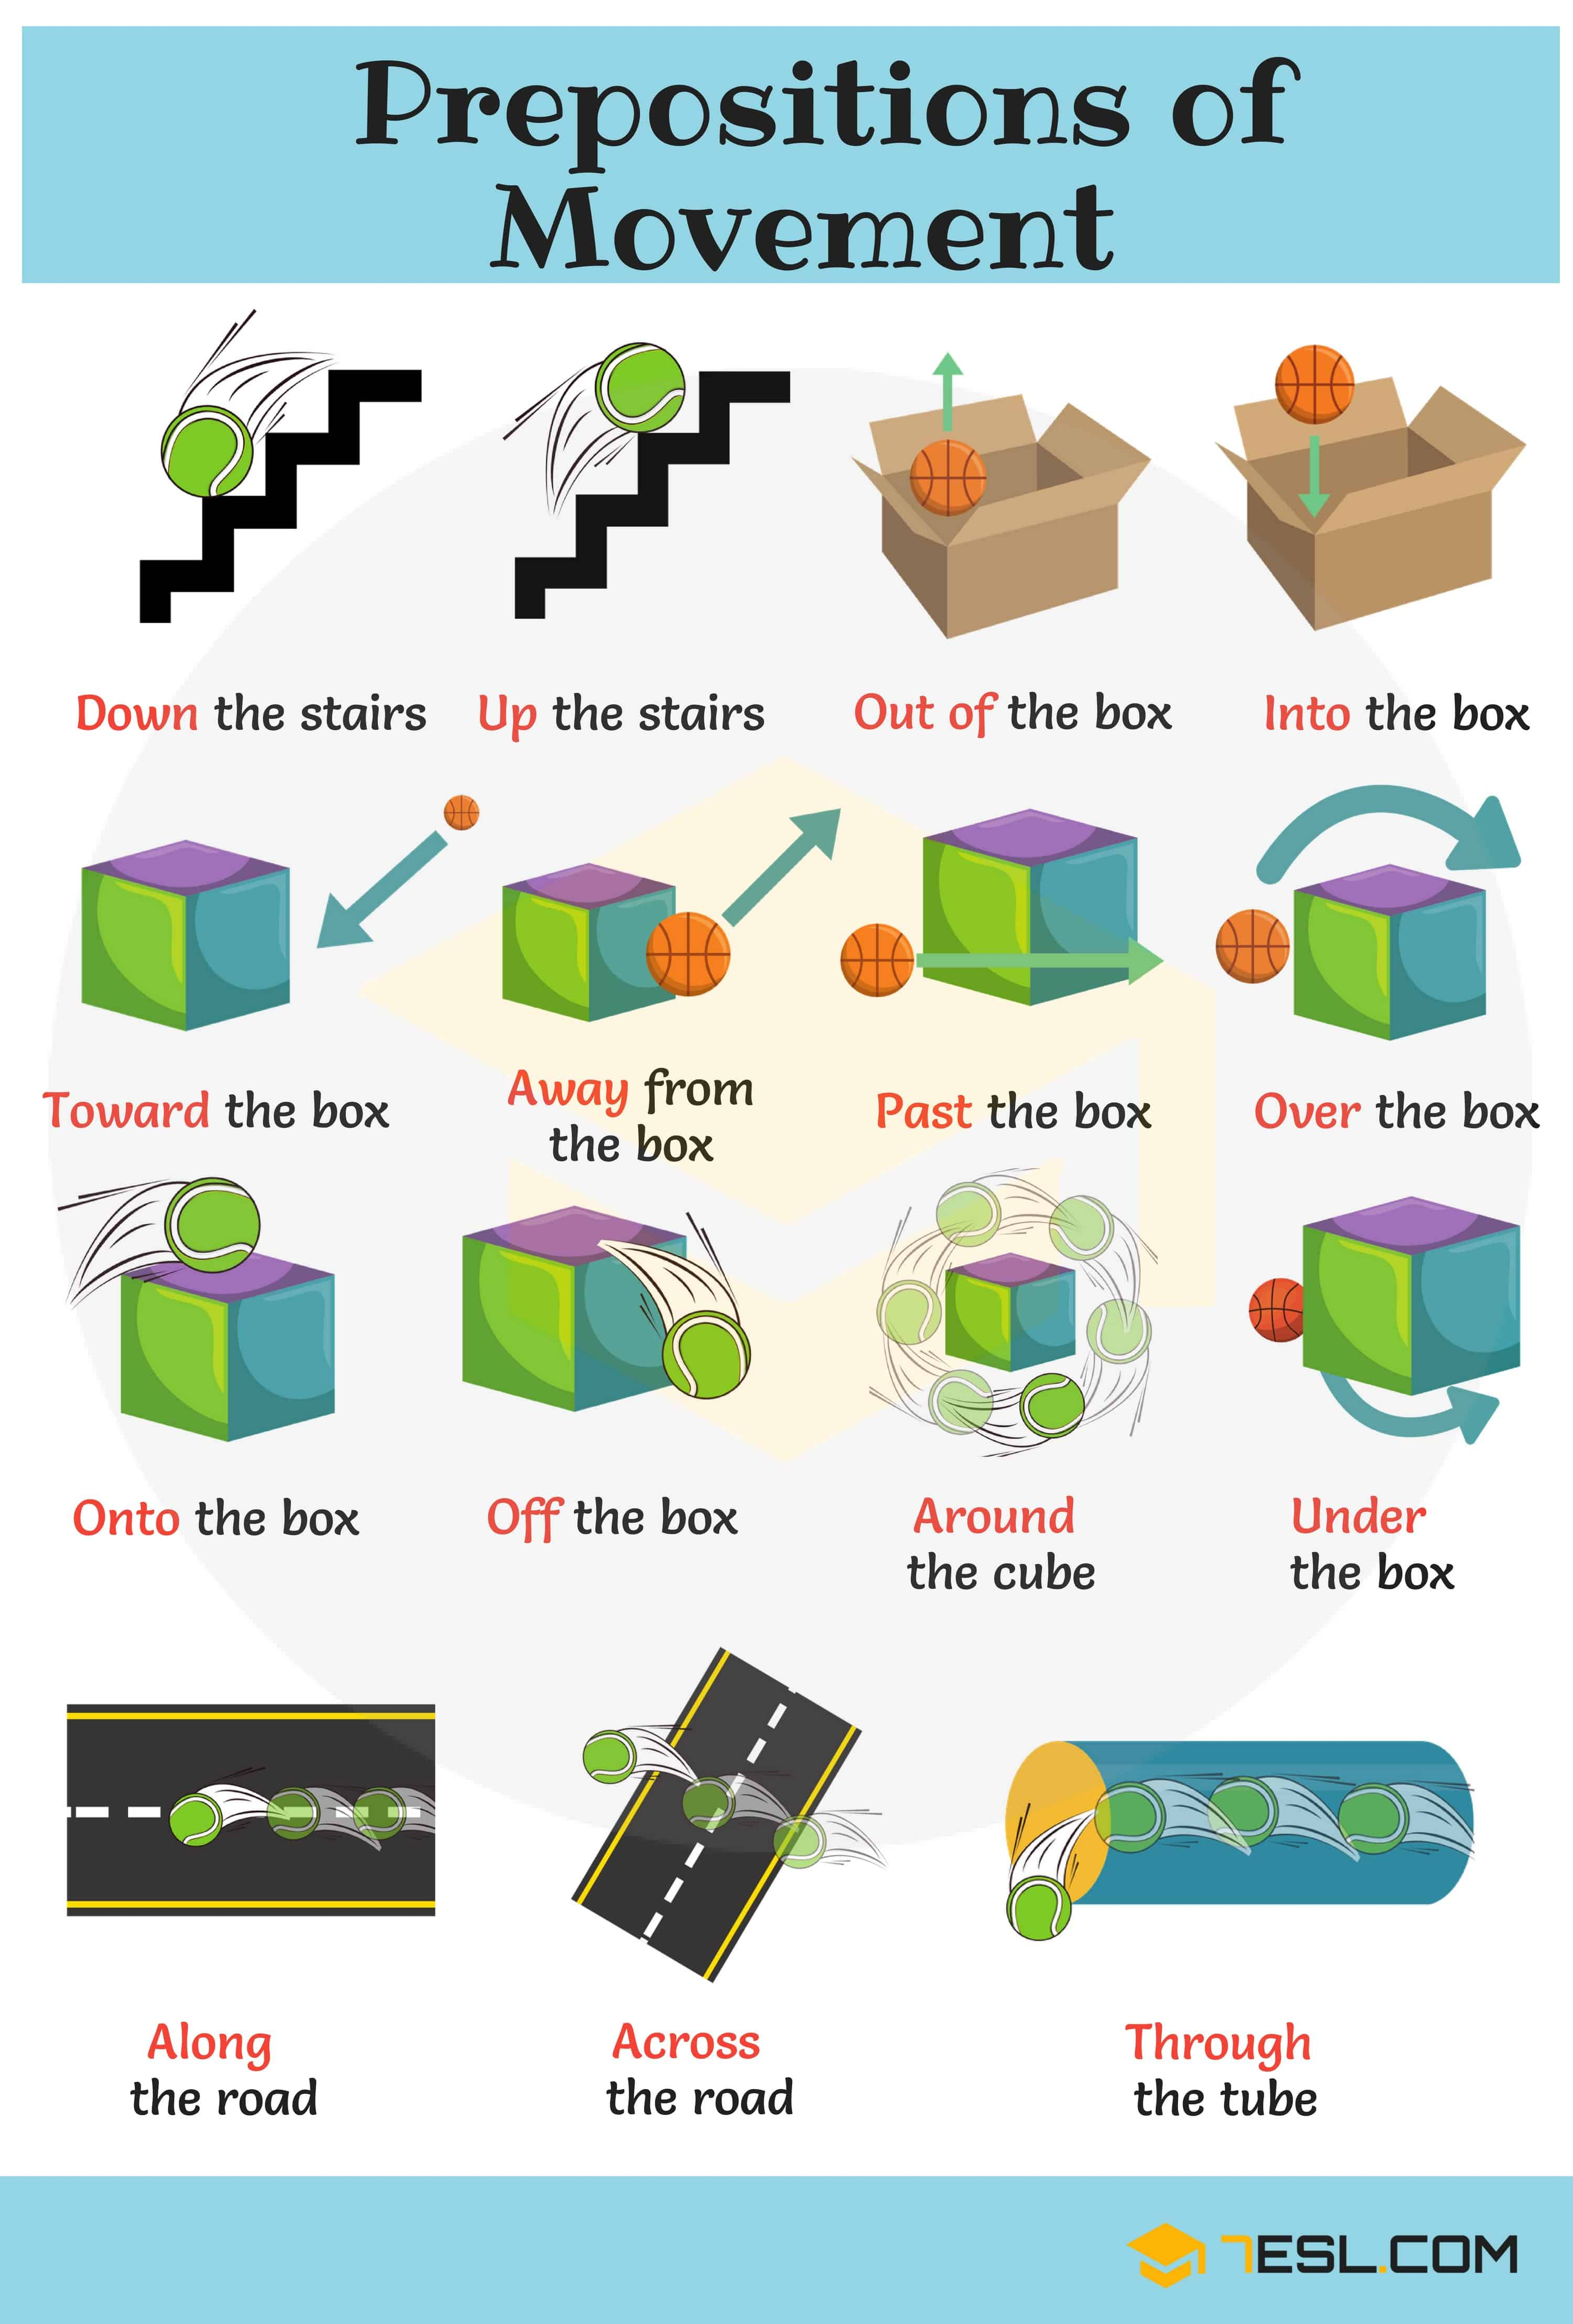 Prepositions with Pictures: Useful Prepositions for Kids 14